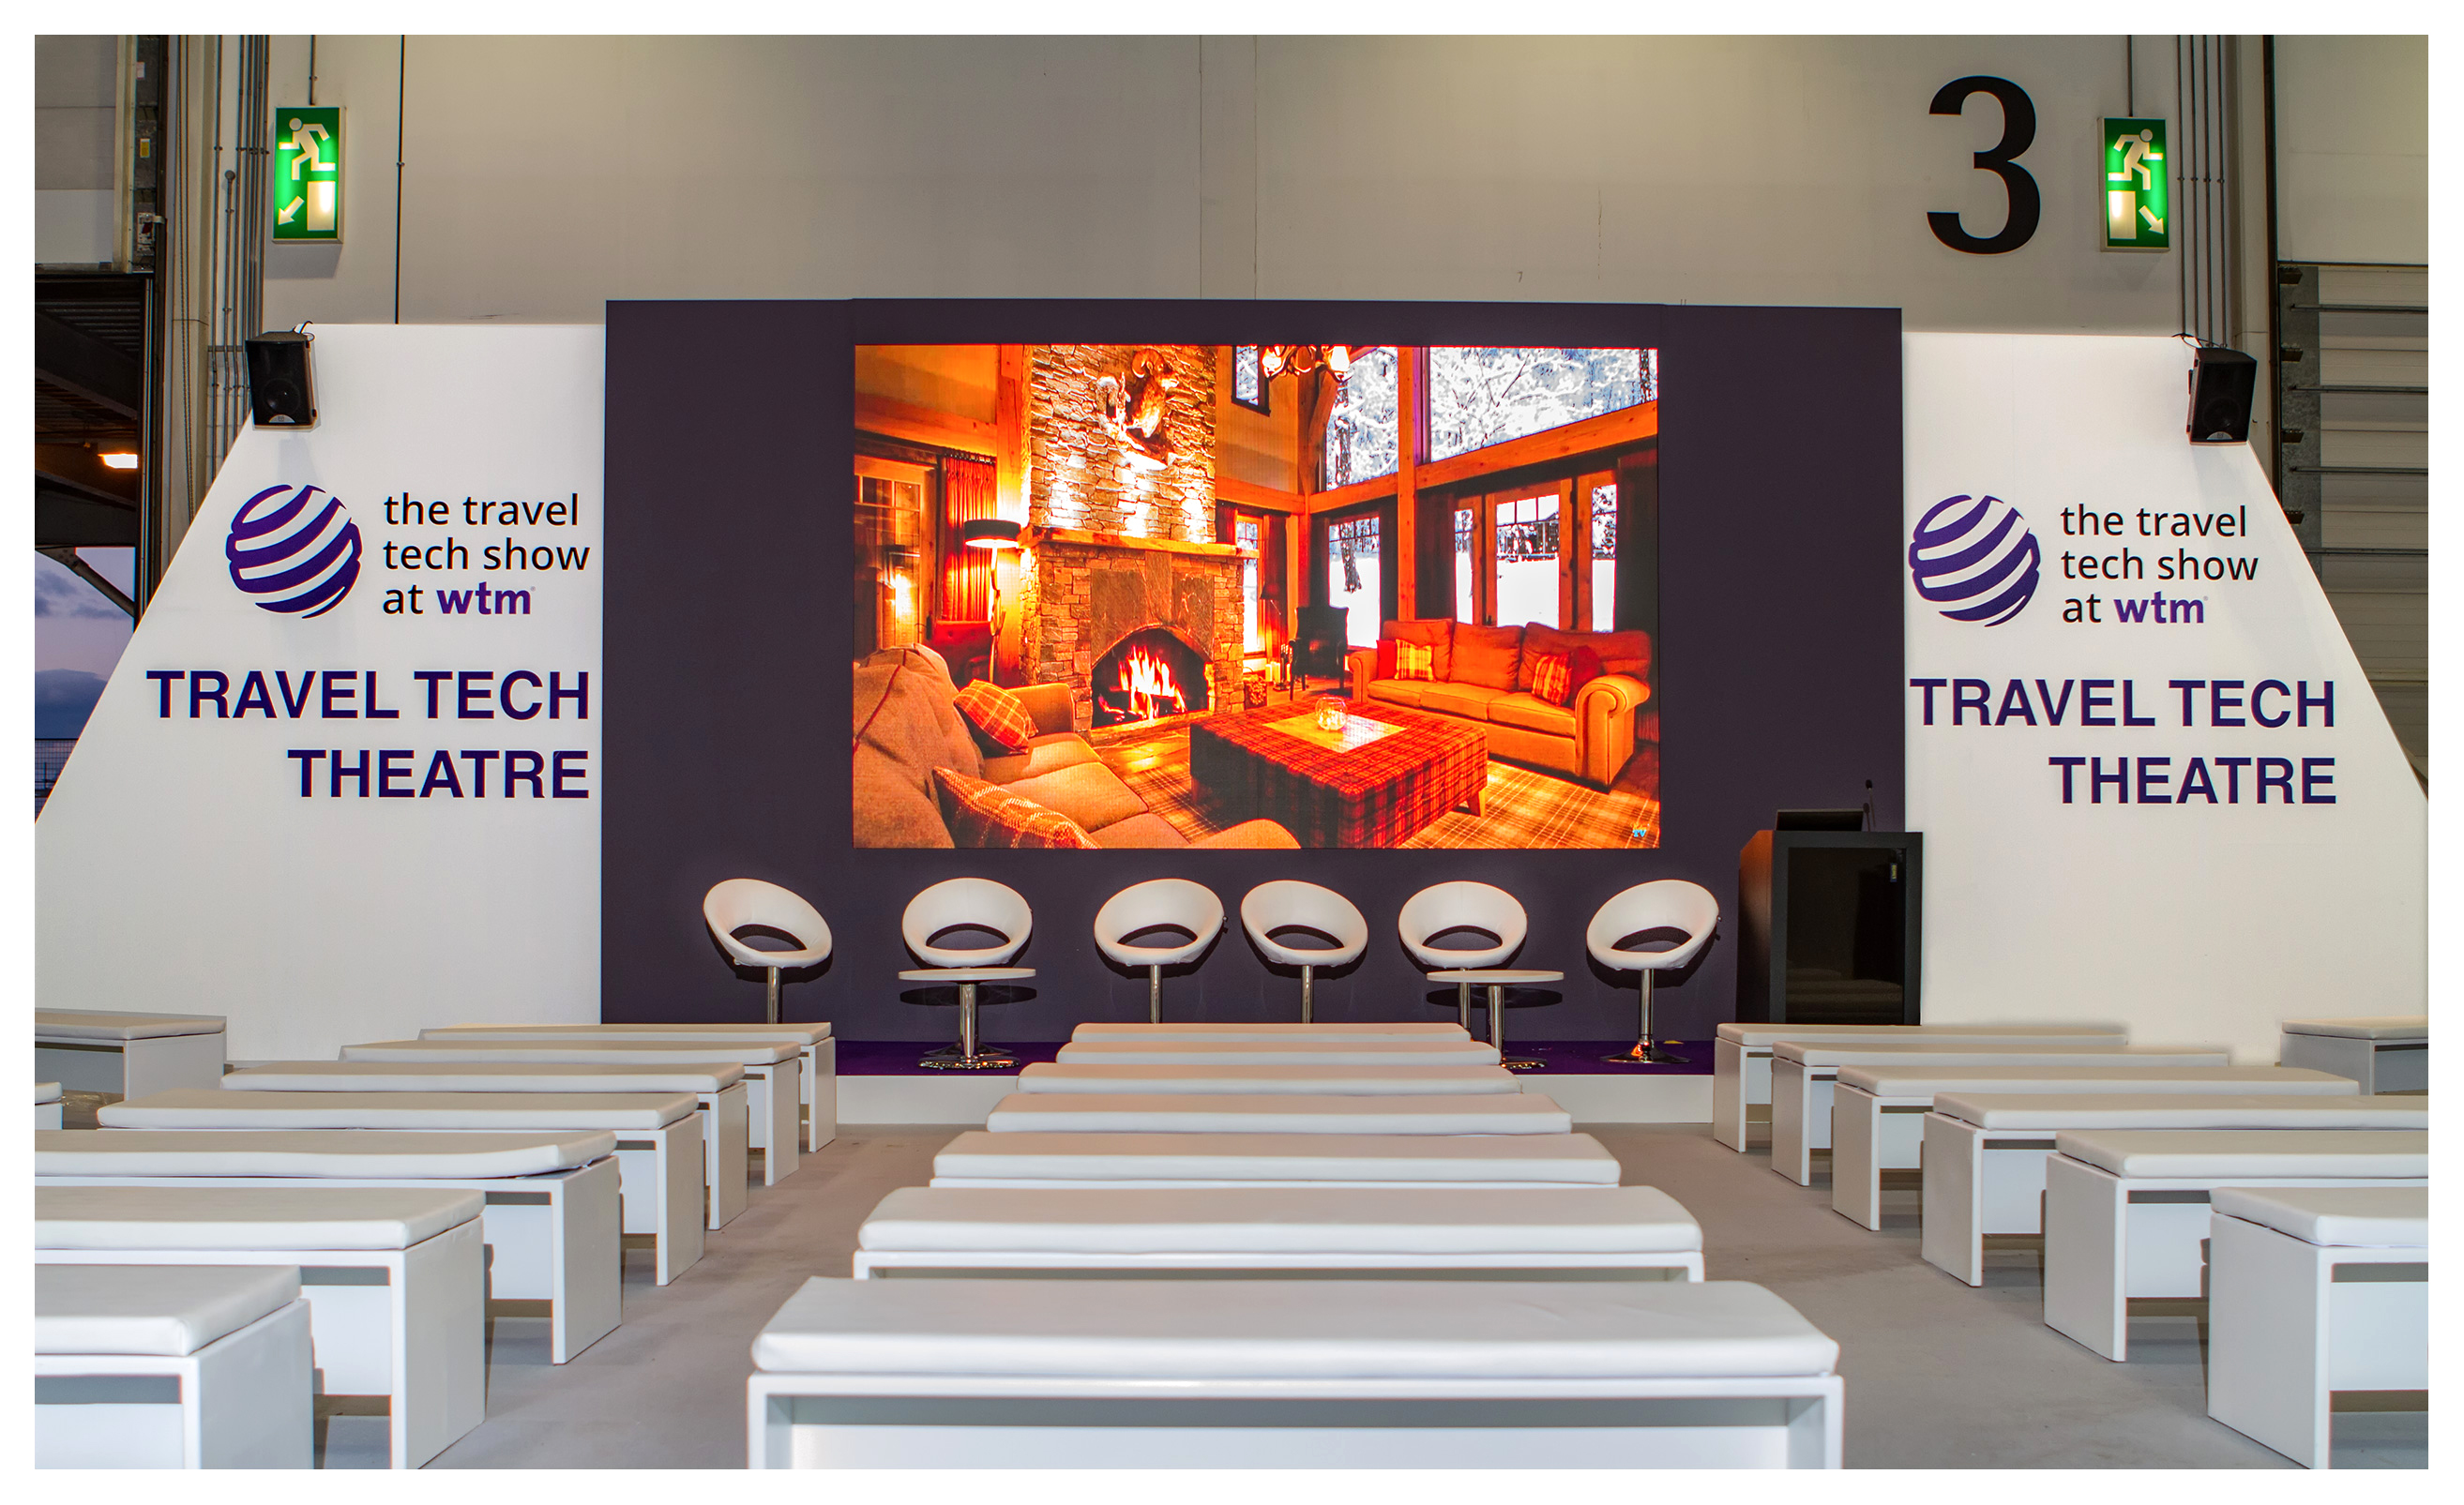 Exhibition photography: Travel Tech Theatre, 2017 World Travel Market, ExCel London